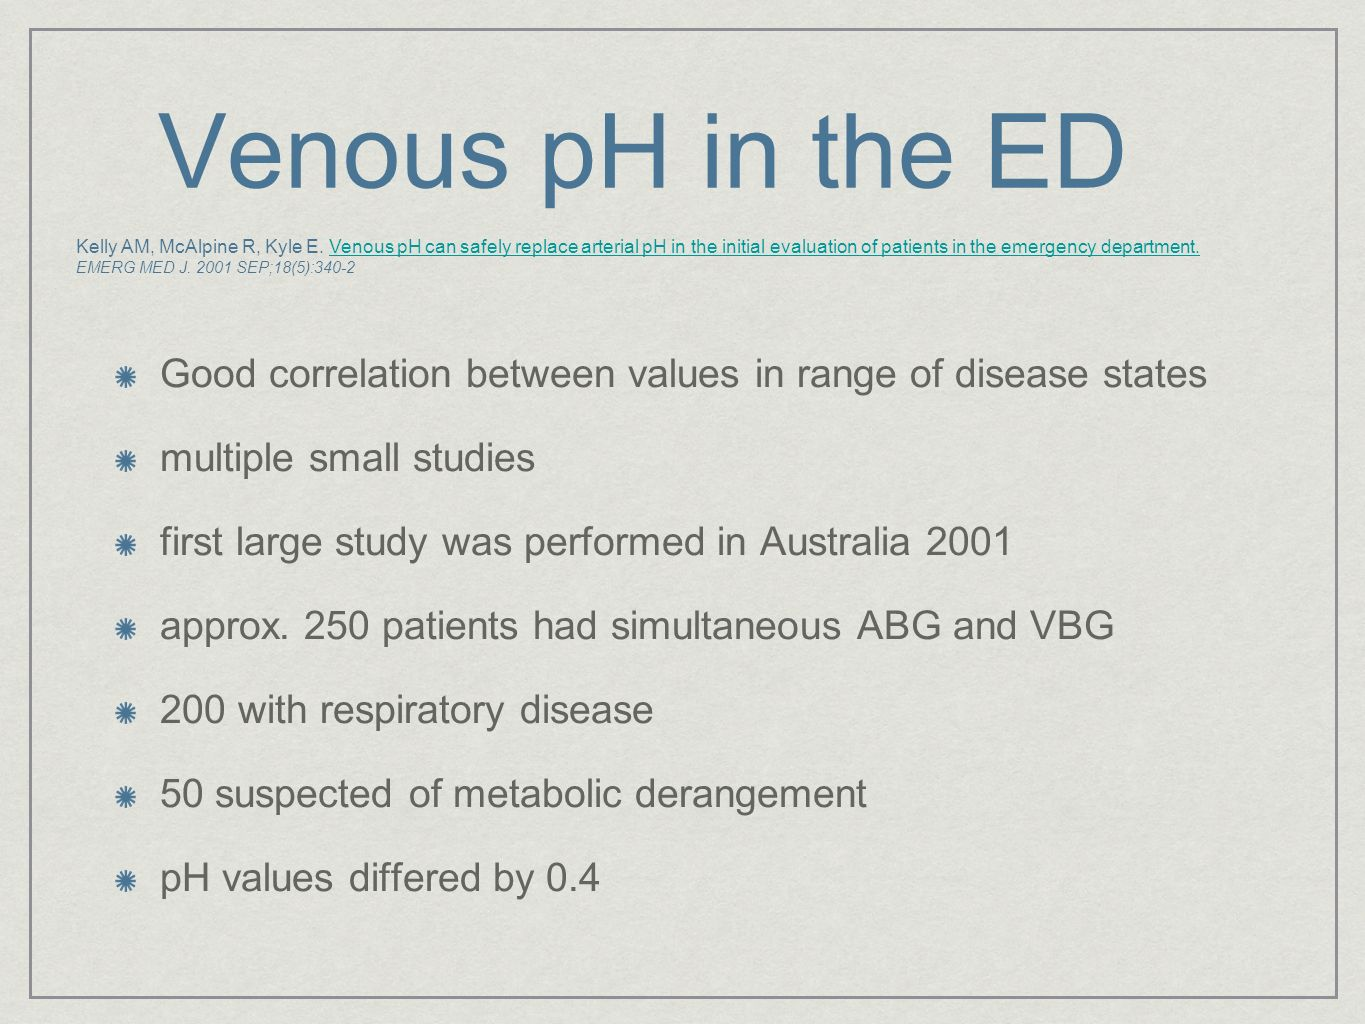 Venous pH in the ED